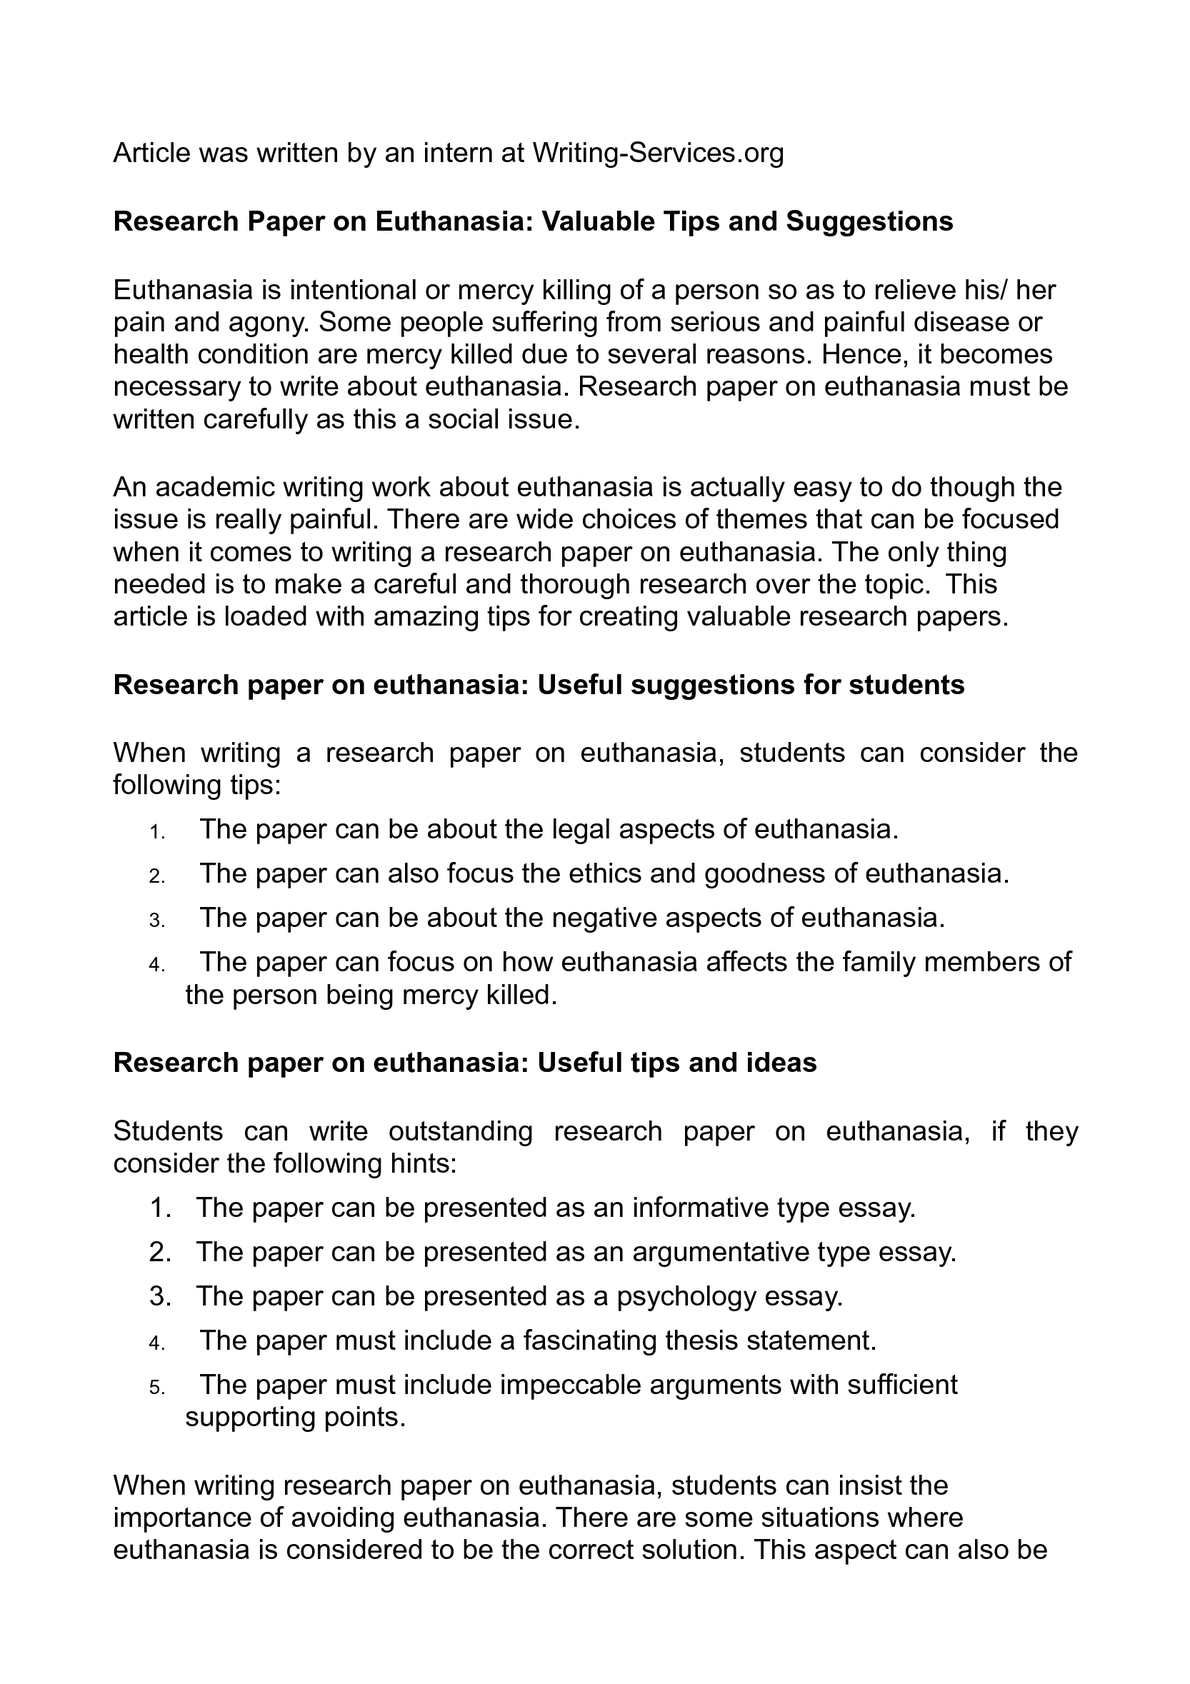 argumentative research paper on euthanasia research argument argumentative research paper on euthanasia research argument essay your research paper should include an argumentative